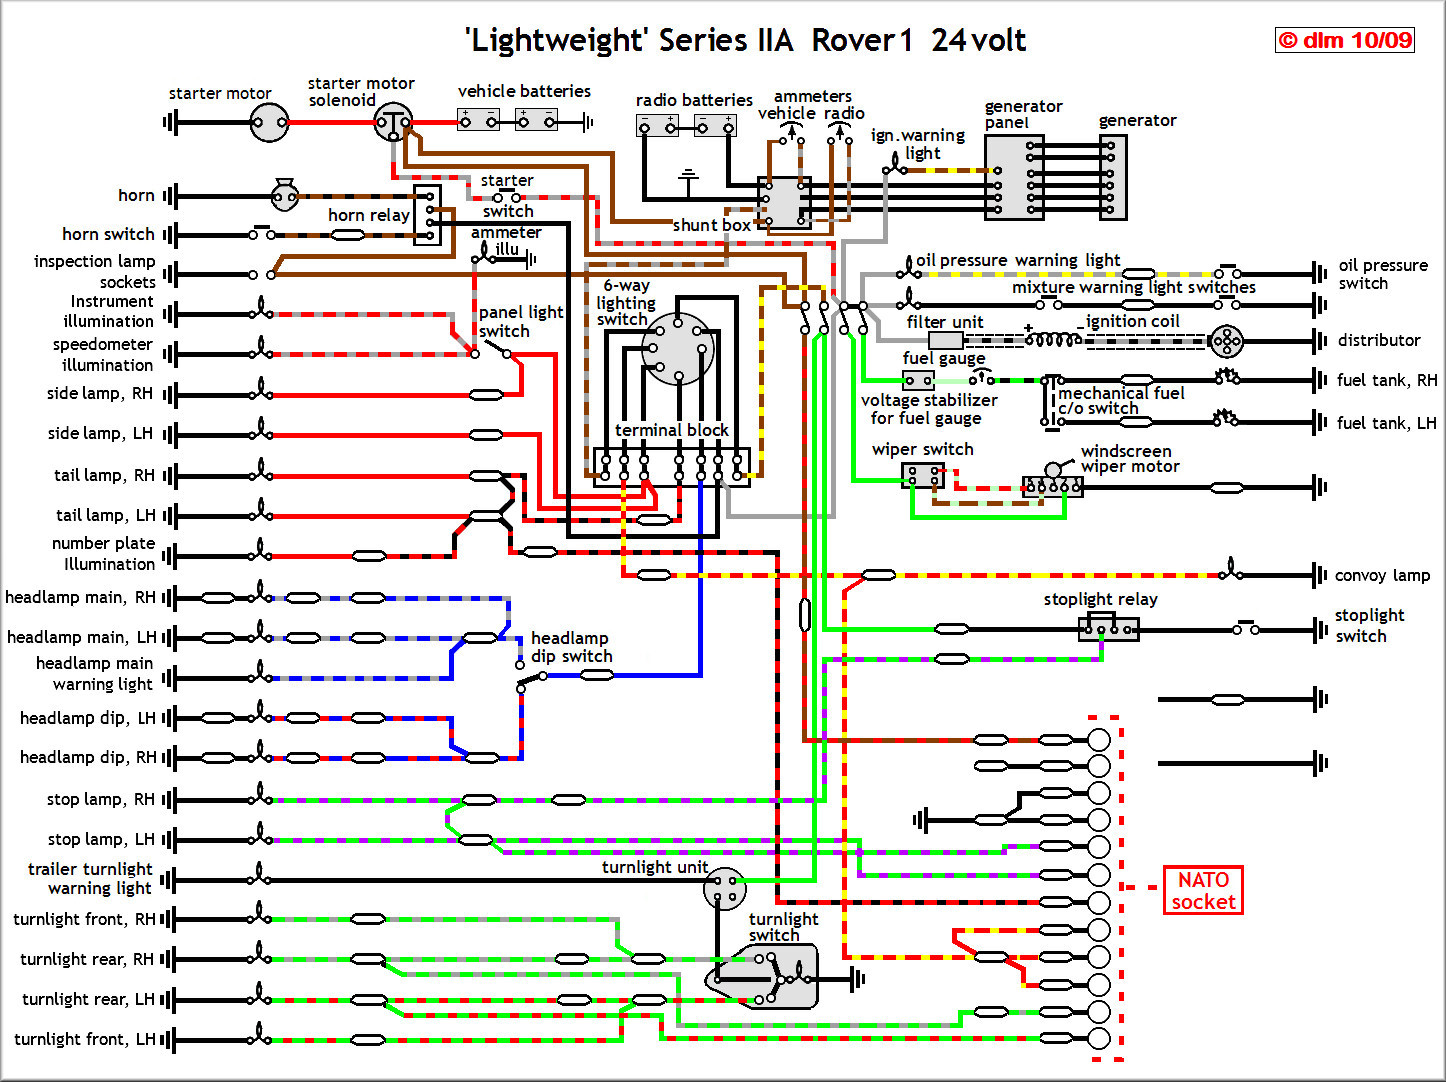 WRG-7489] 2007 Land Rover Lr3 Fuse Box Diagram